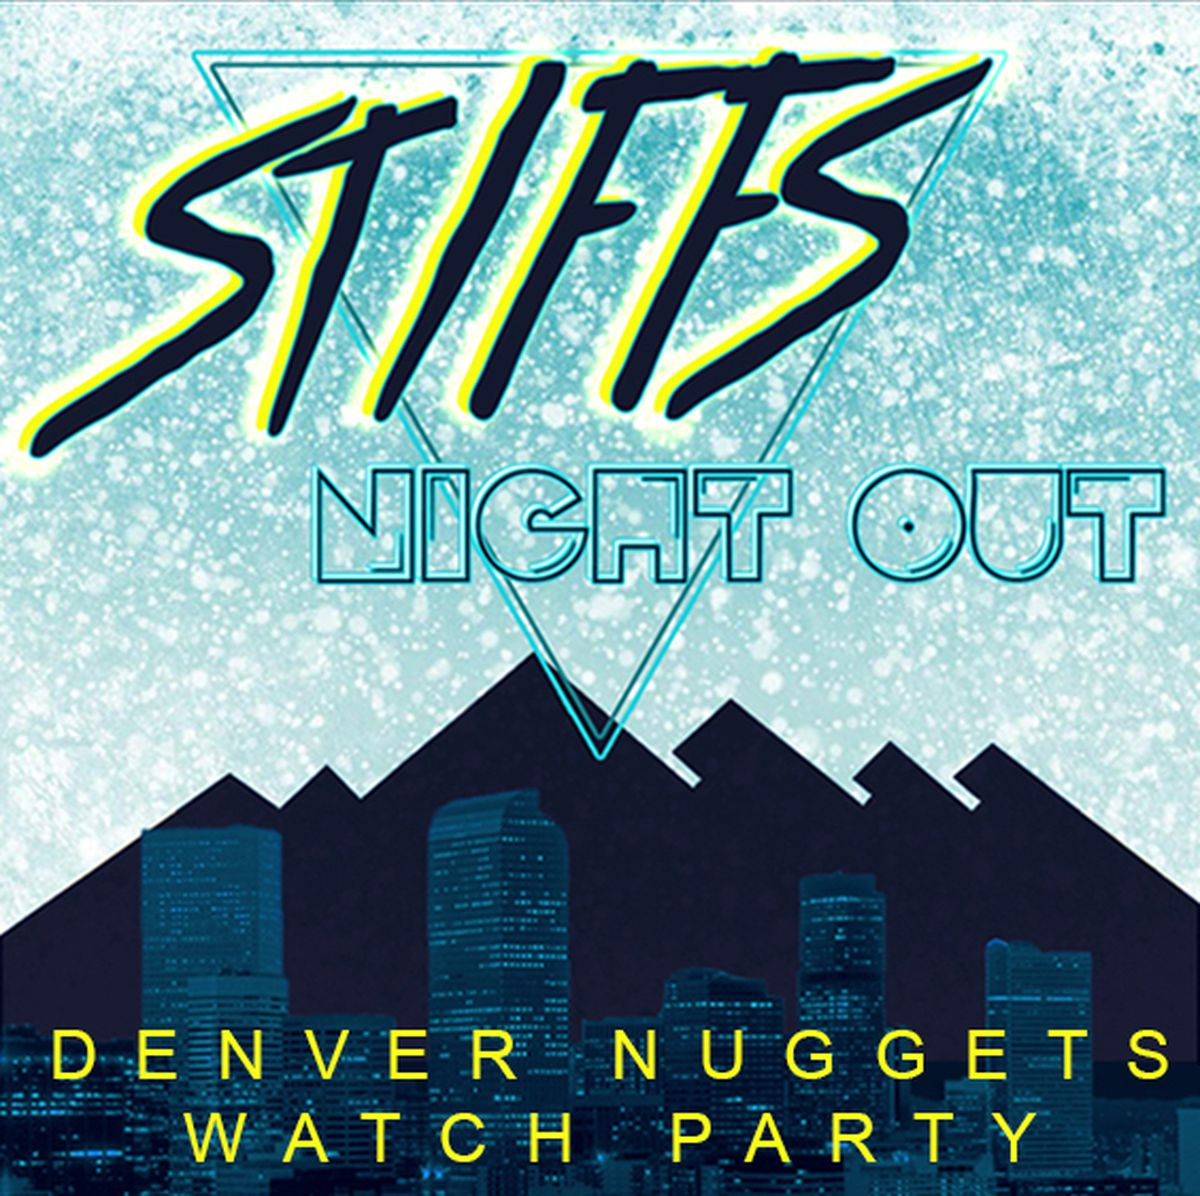 Nuggets Watch Party: Stiffs Night Out Is Saturday, January 6th At The Celtic